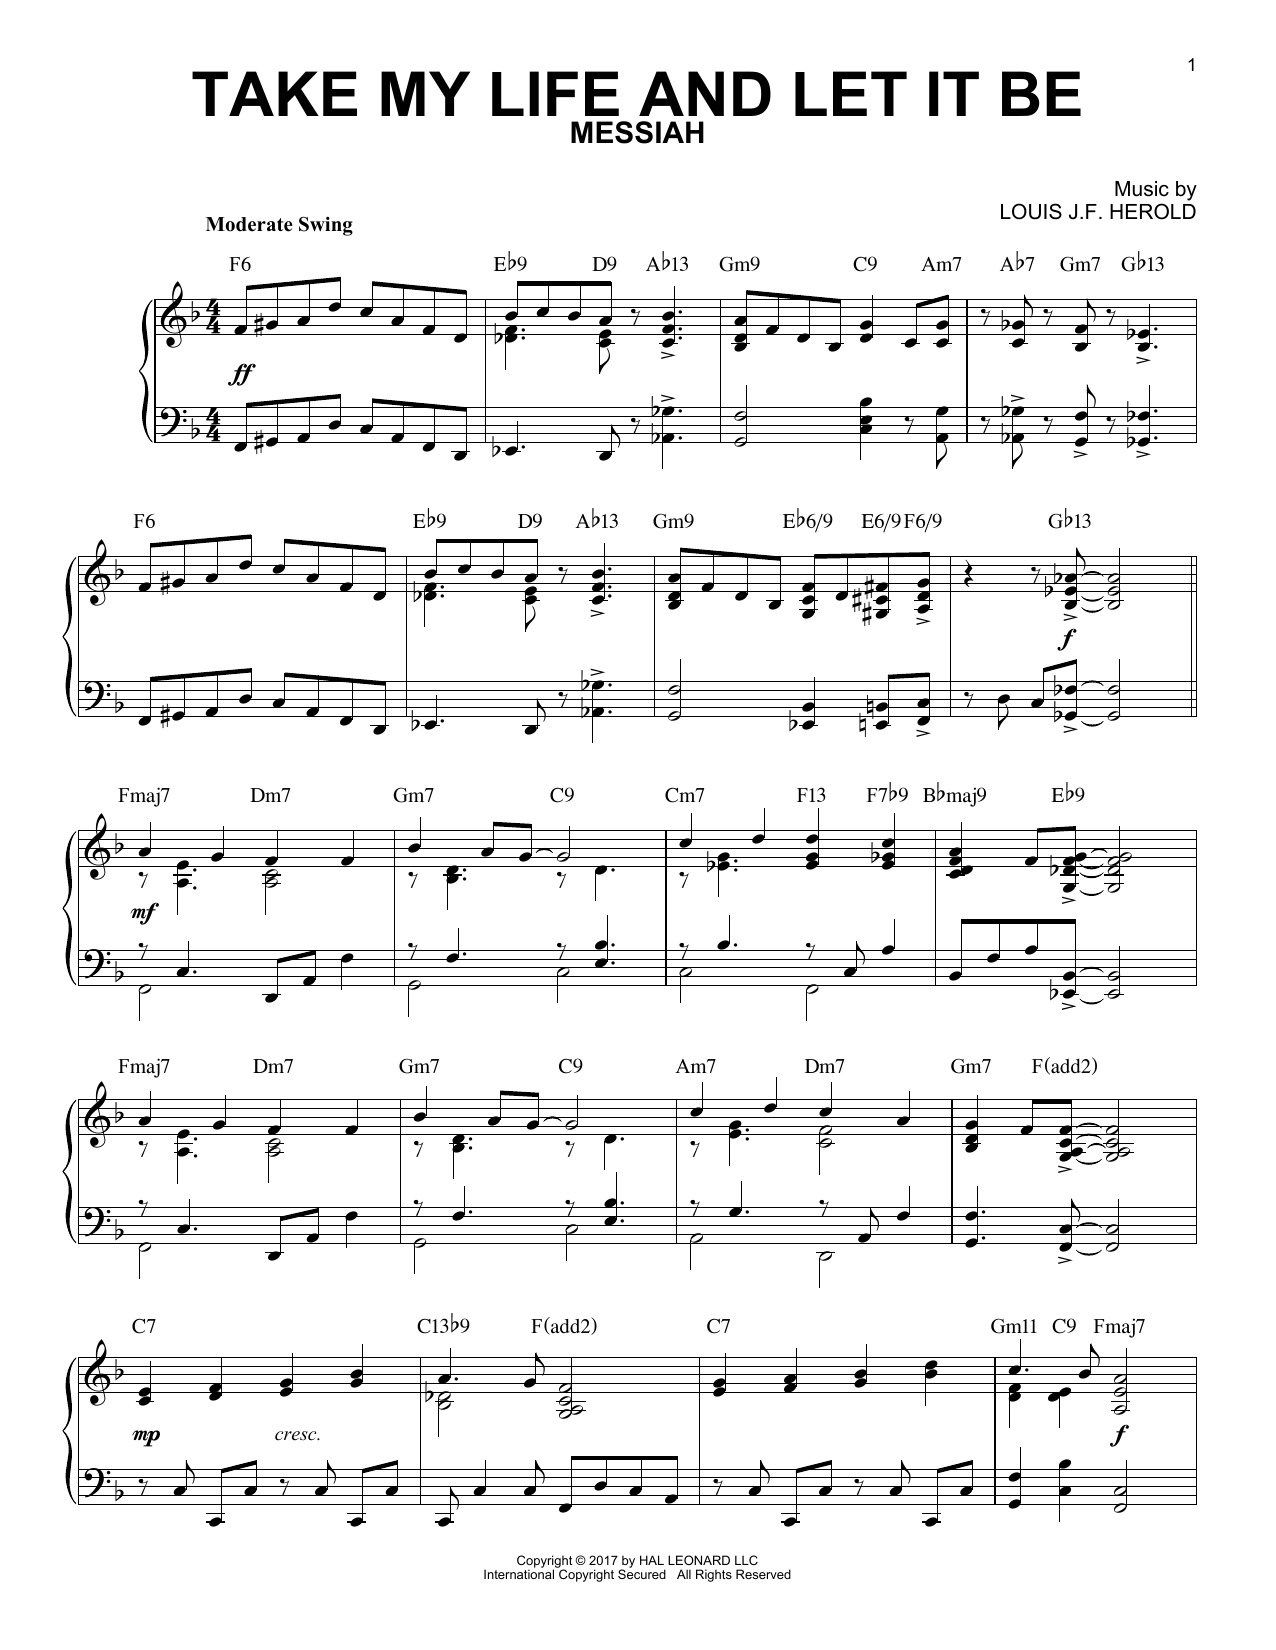 George Kingsley Take My Life And Let It Be [Jazz version] sheet music notes and chords. Download Printable PDF.